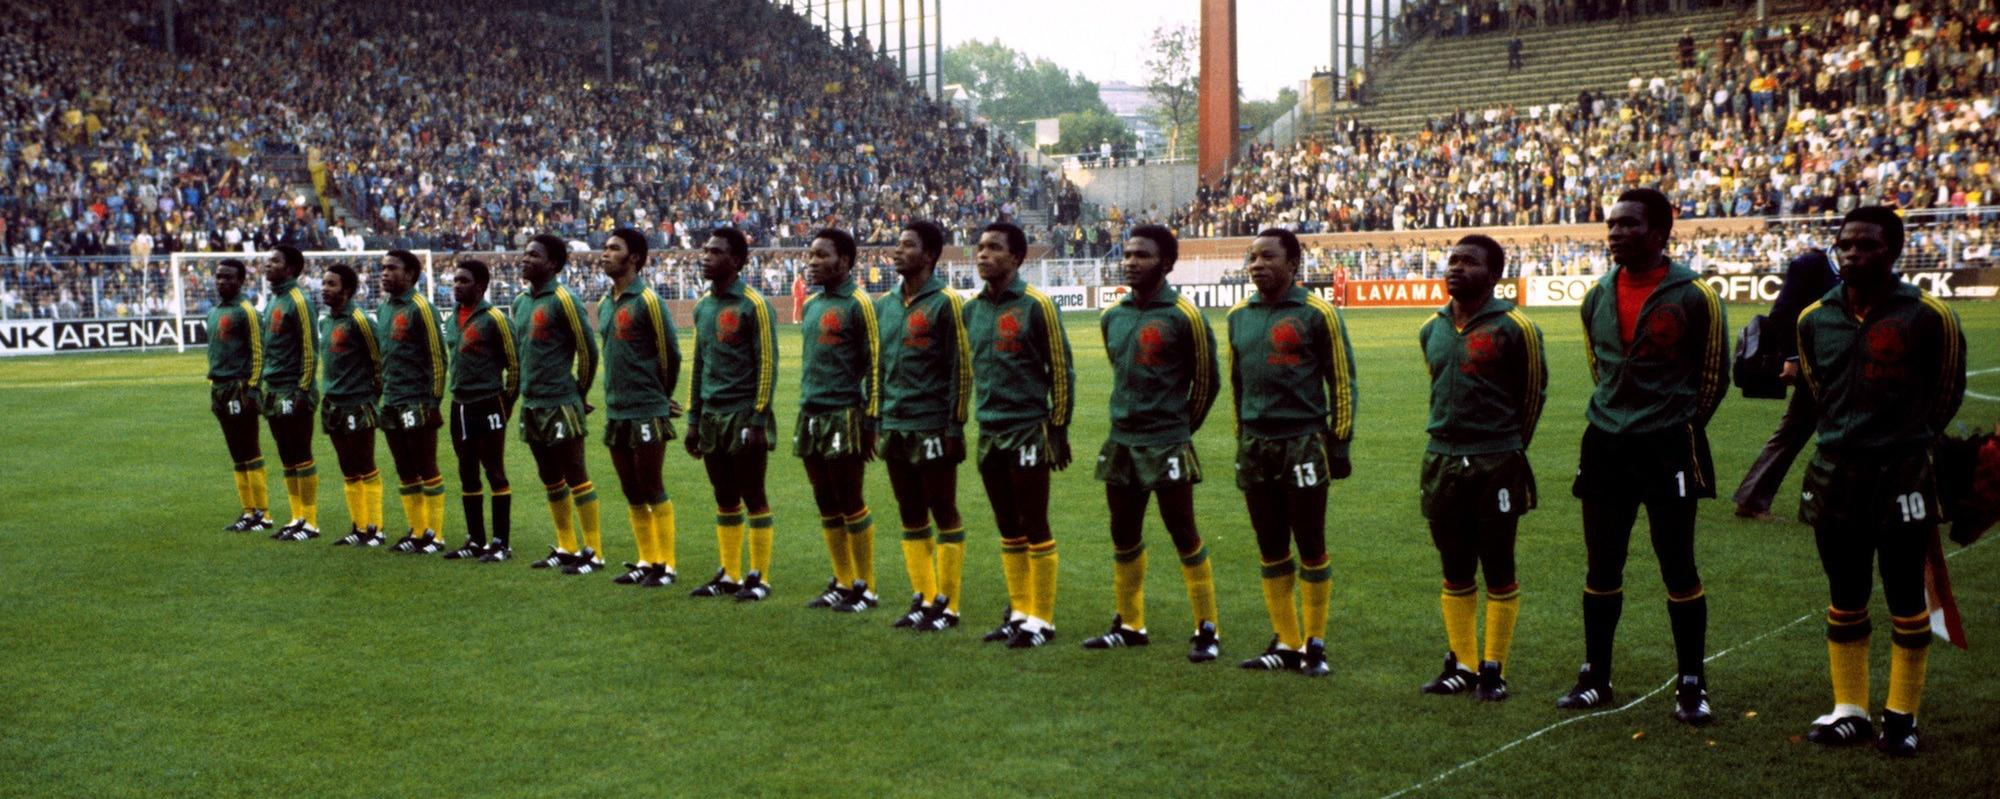 Throwback Thursday: The Bizarre Tragedy of Zaire's World Cup Debut